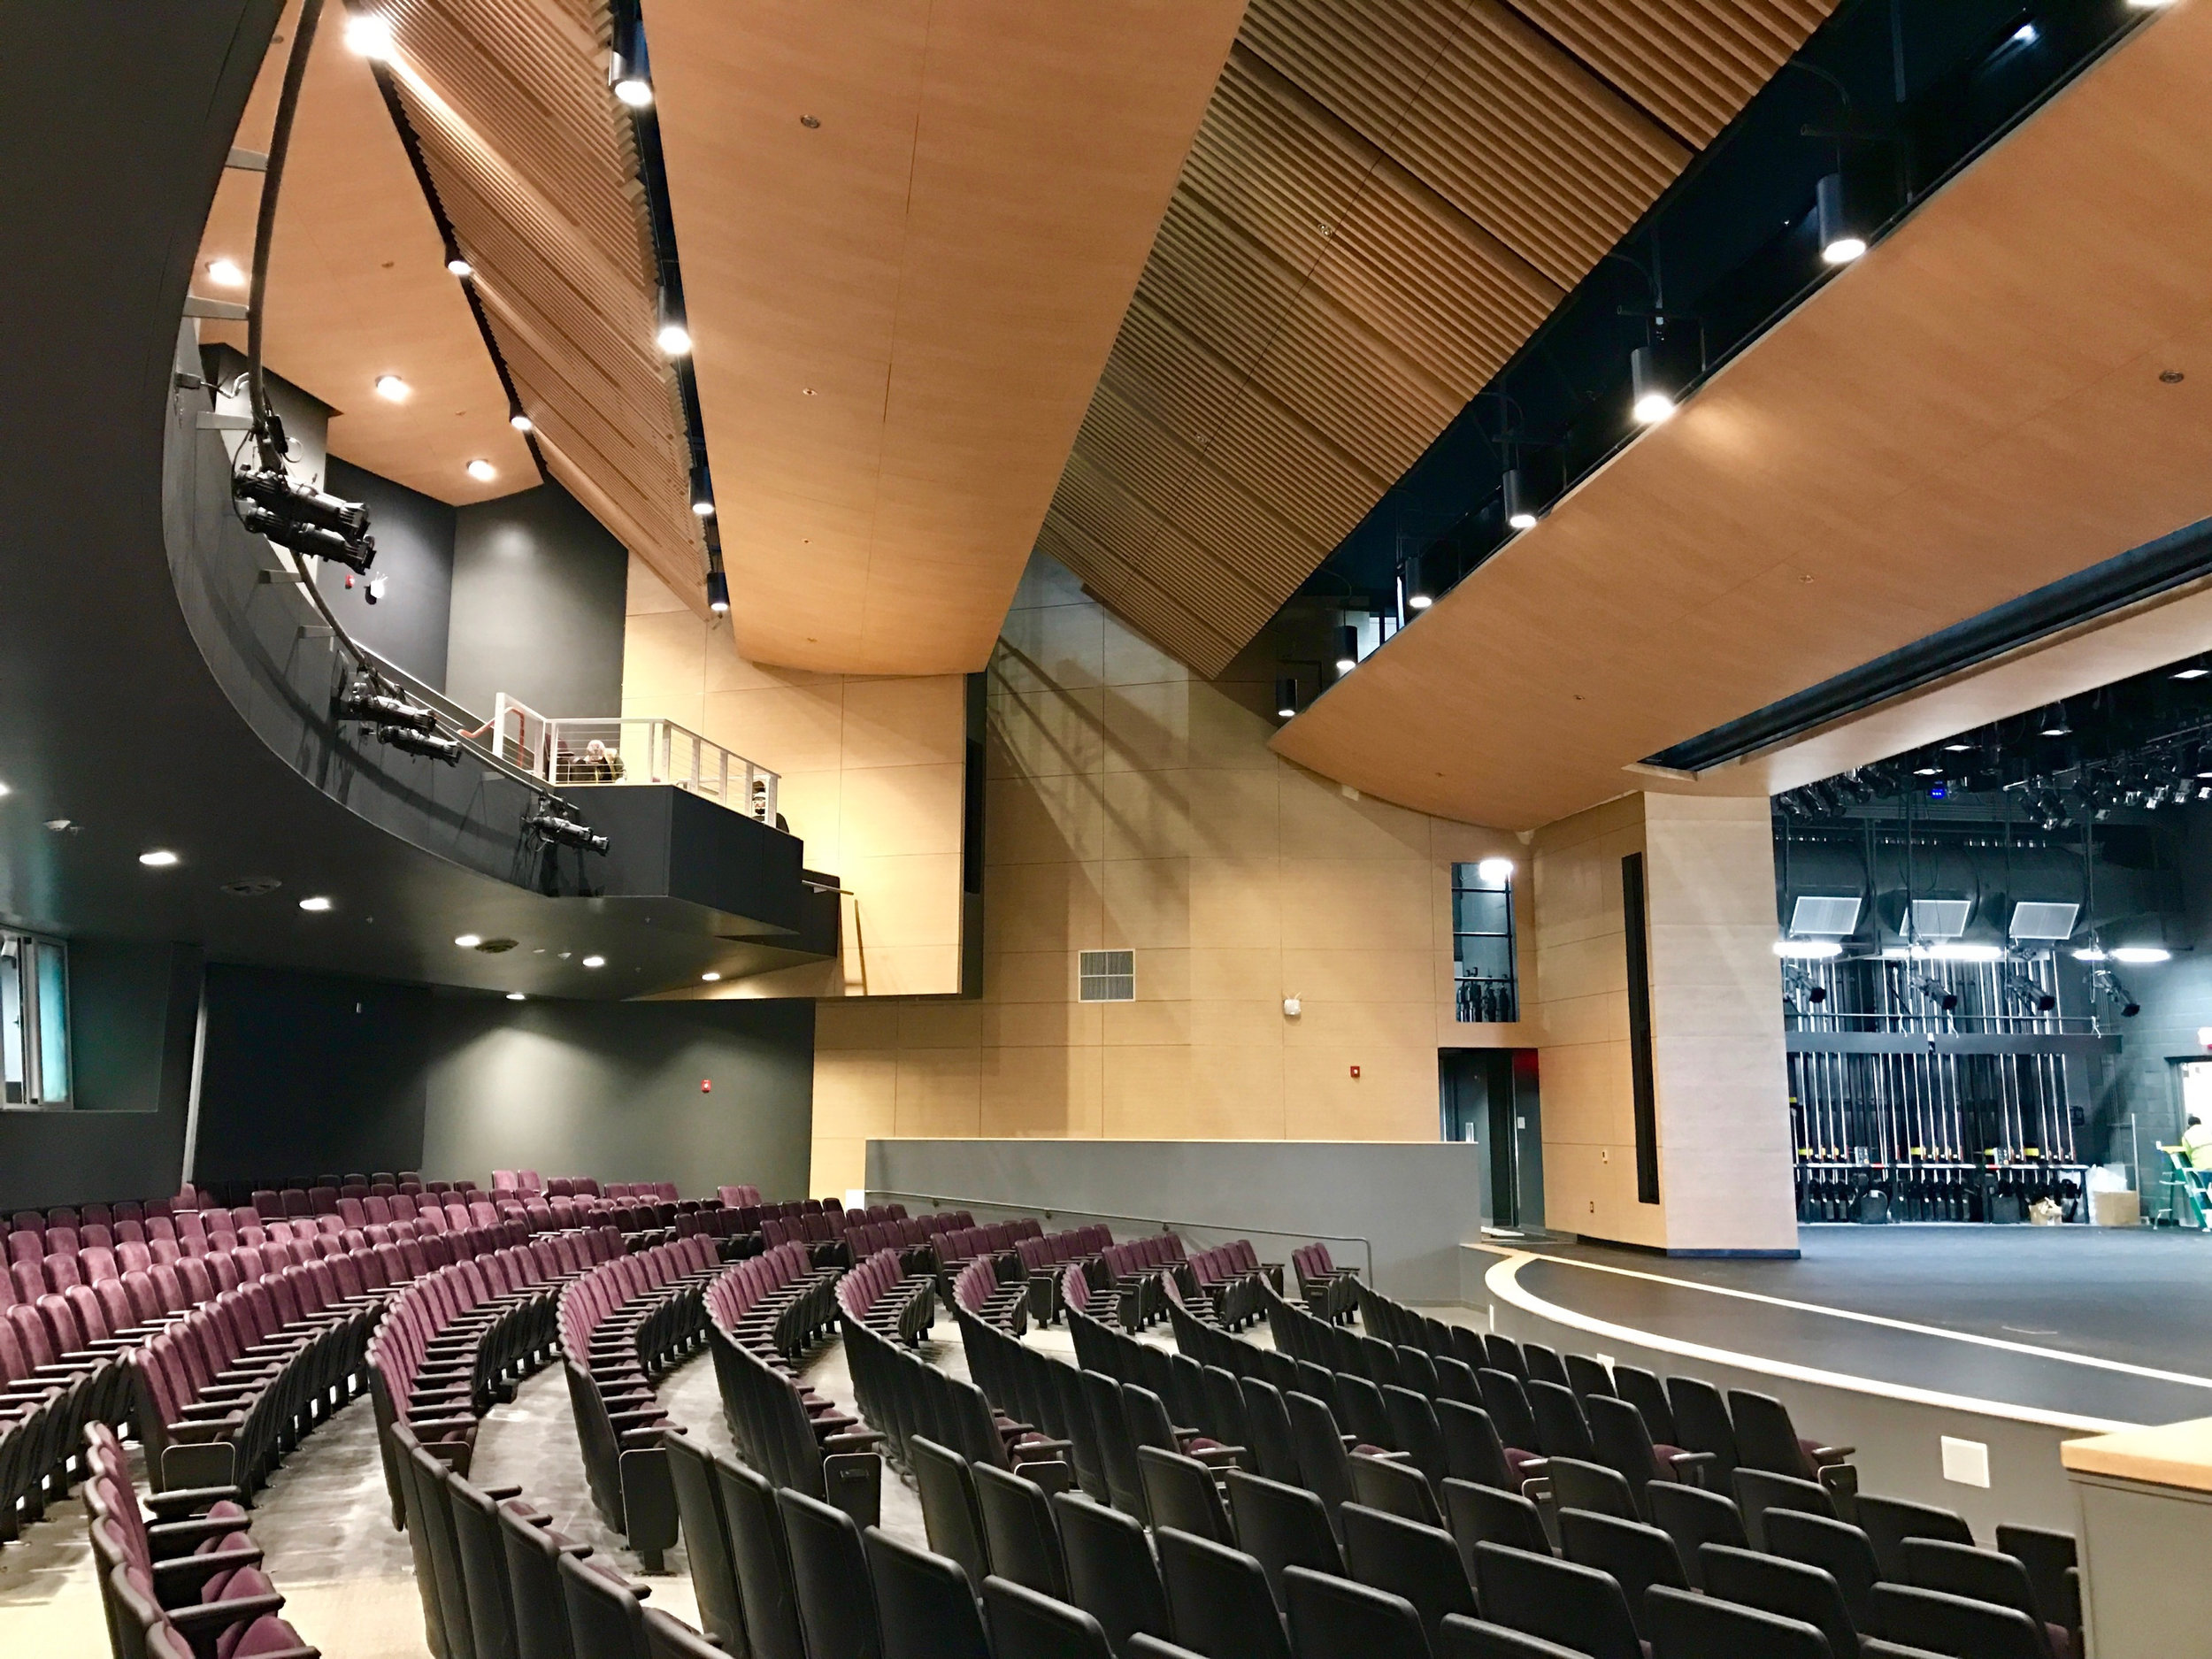 Portola High School Performing Arts Center - Photo Credit: Evan Troxel